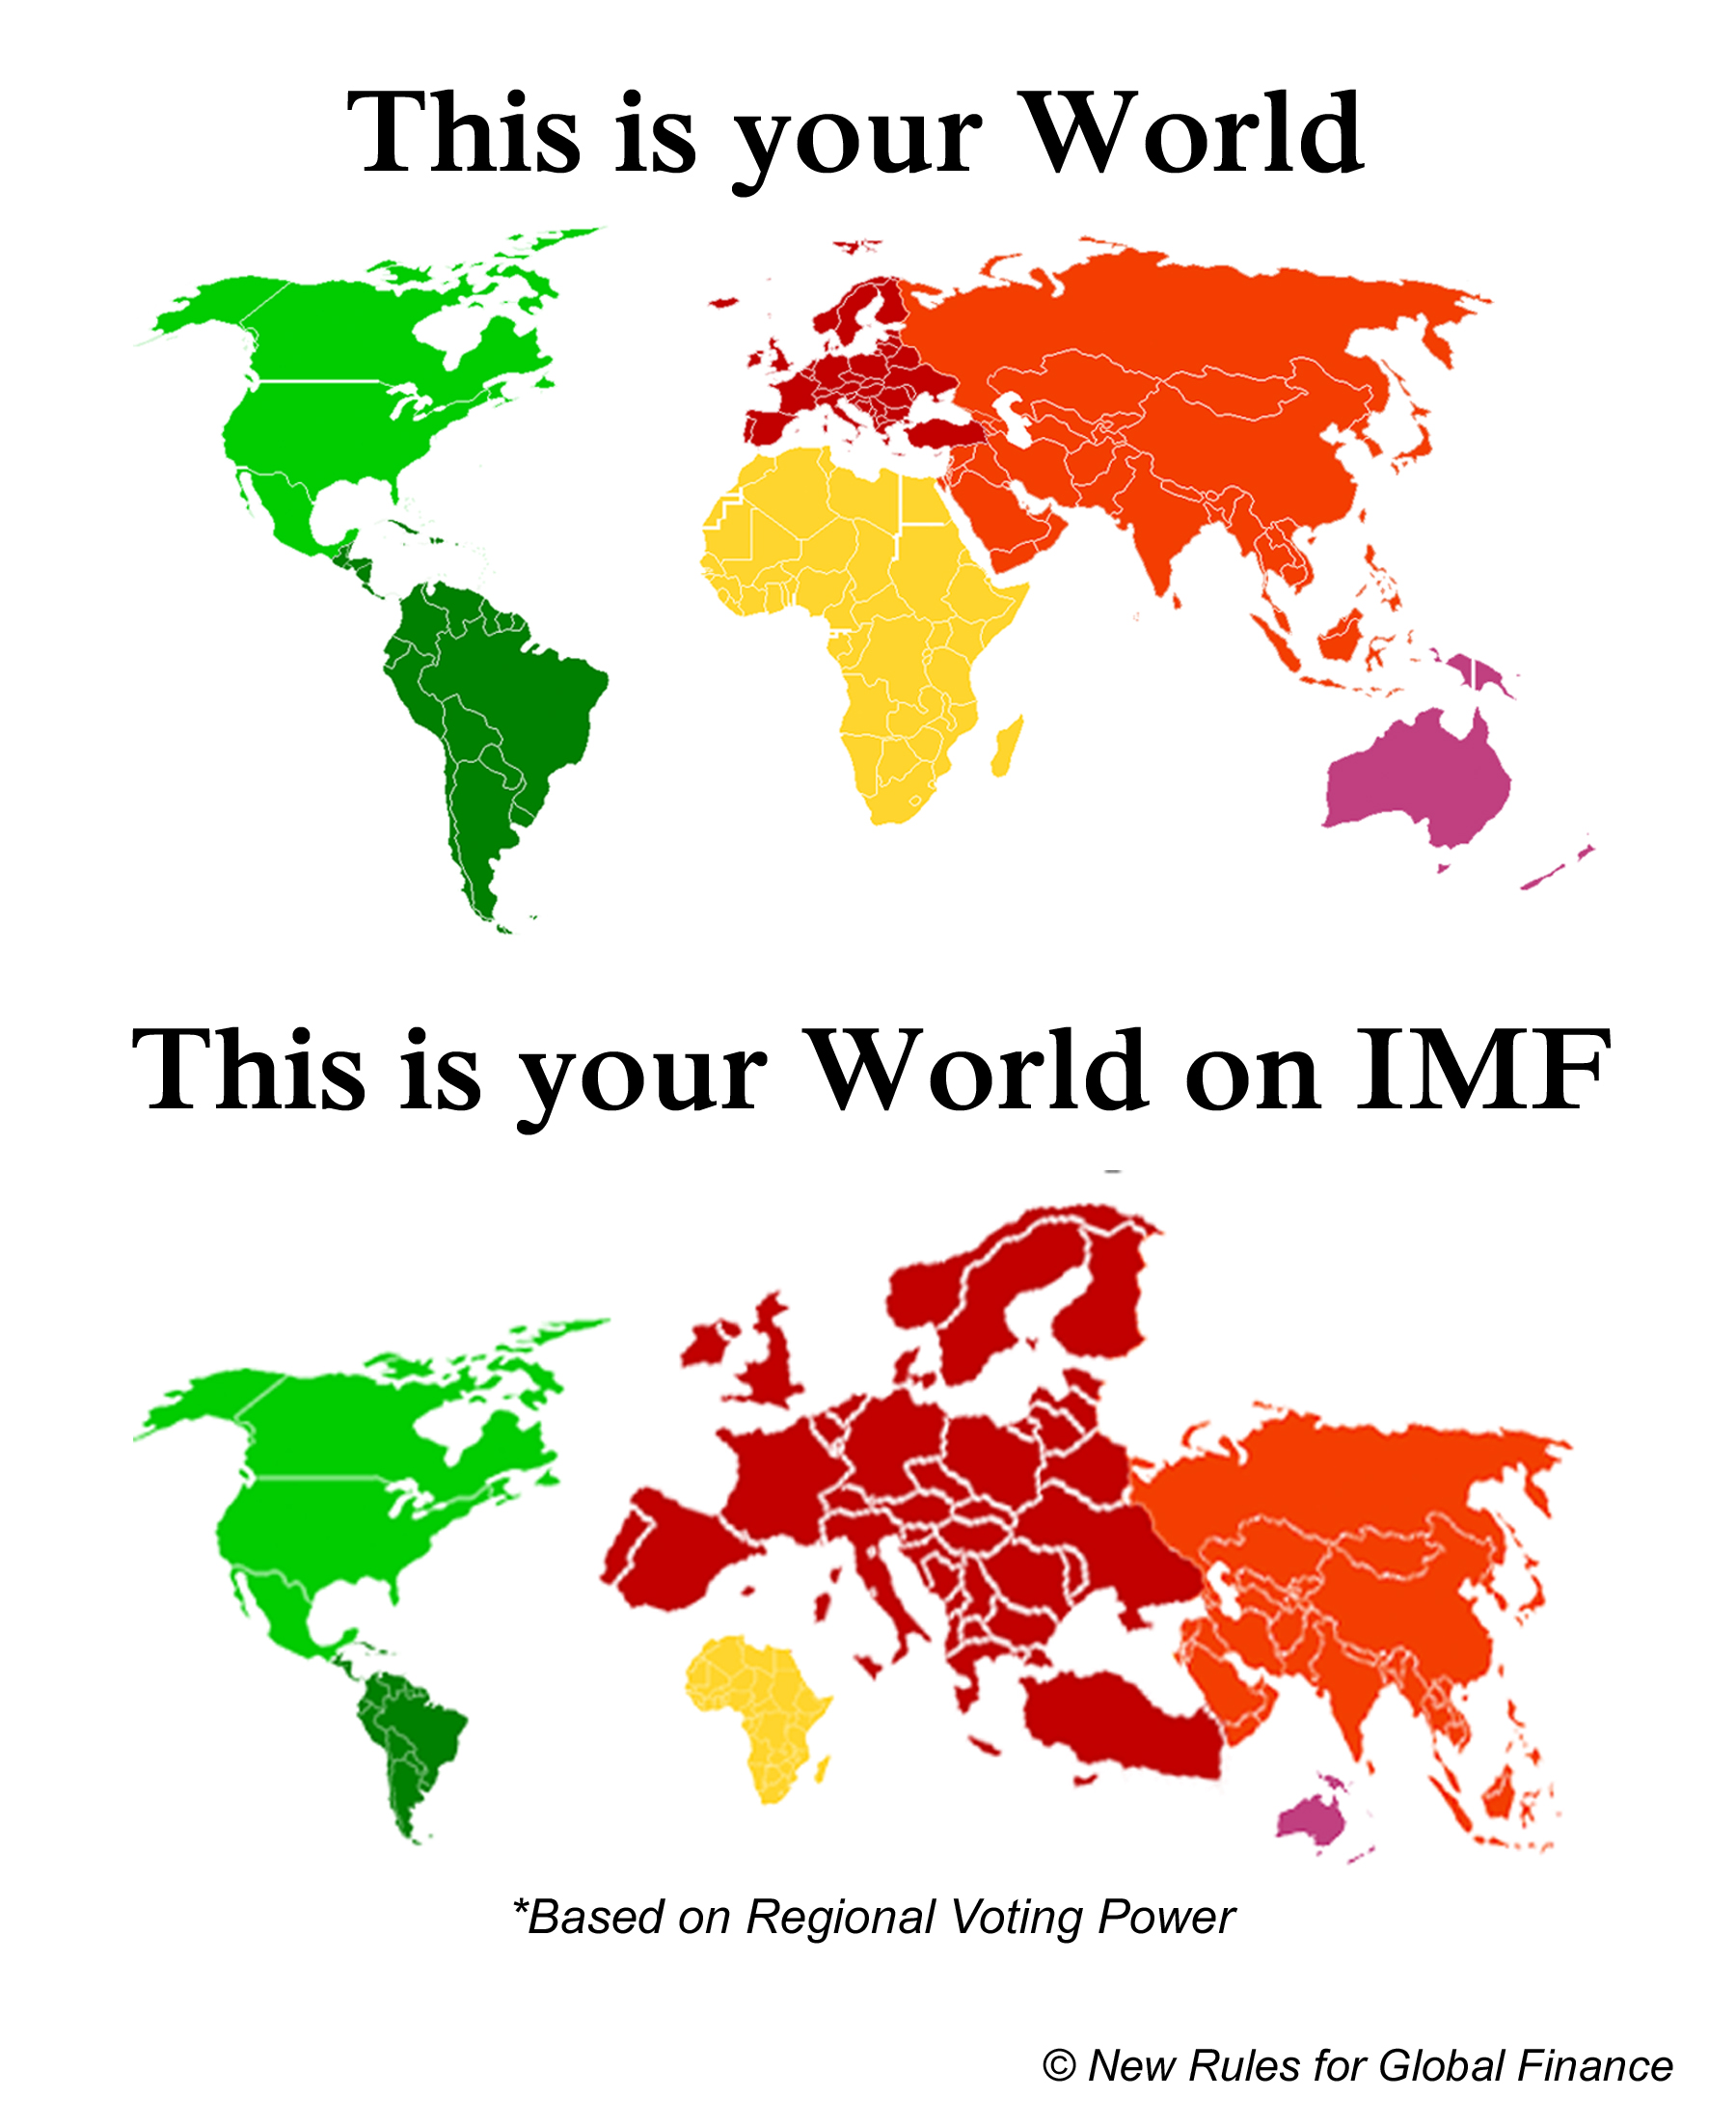 World on IMF